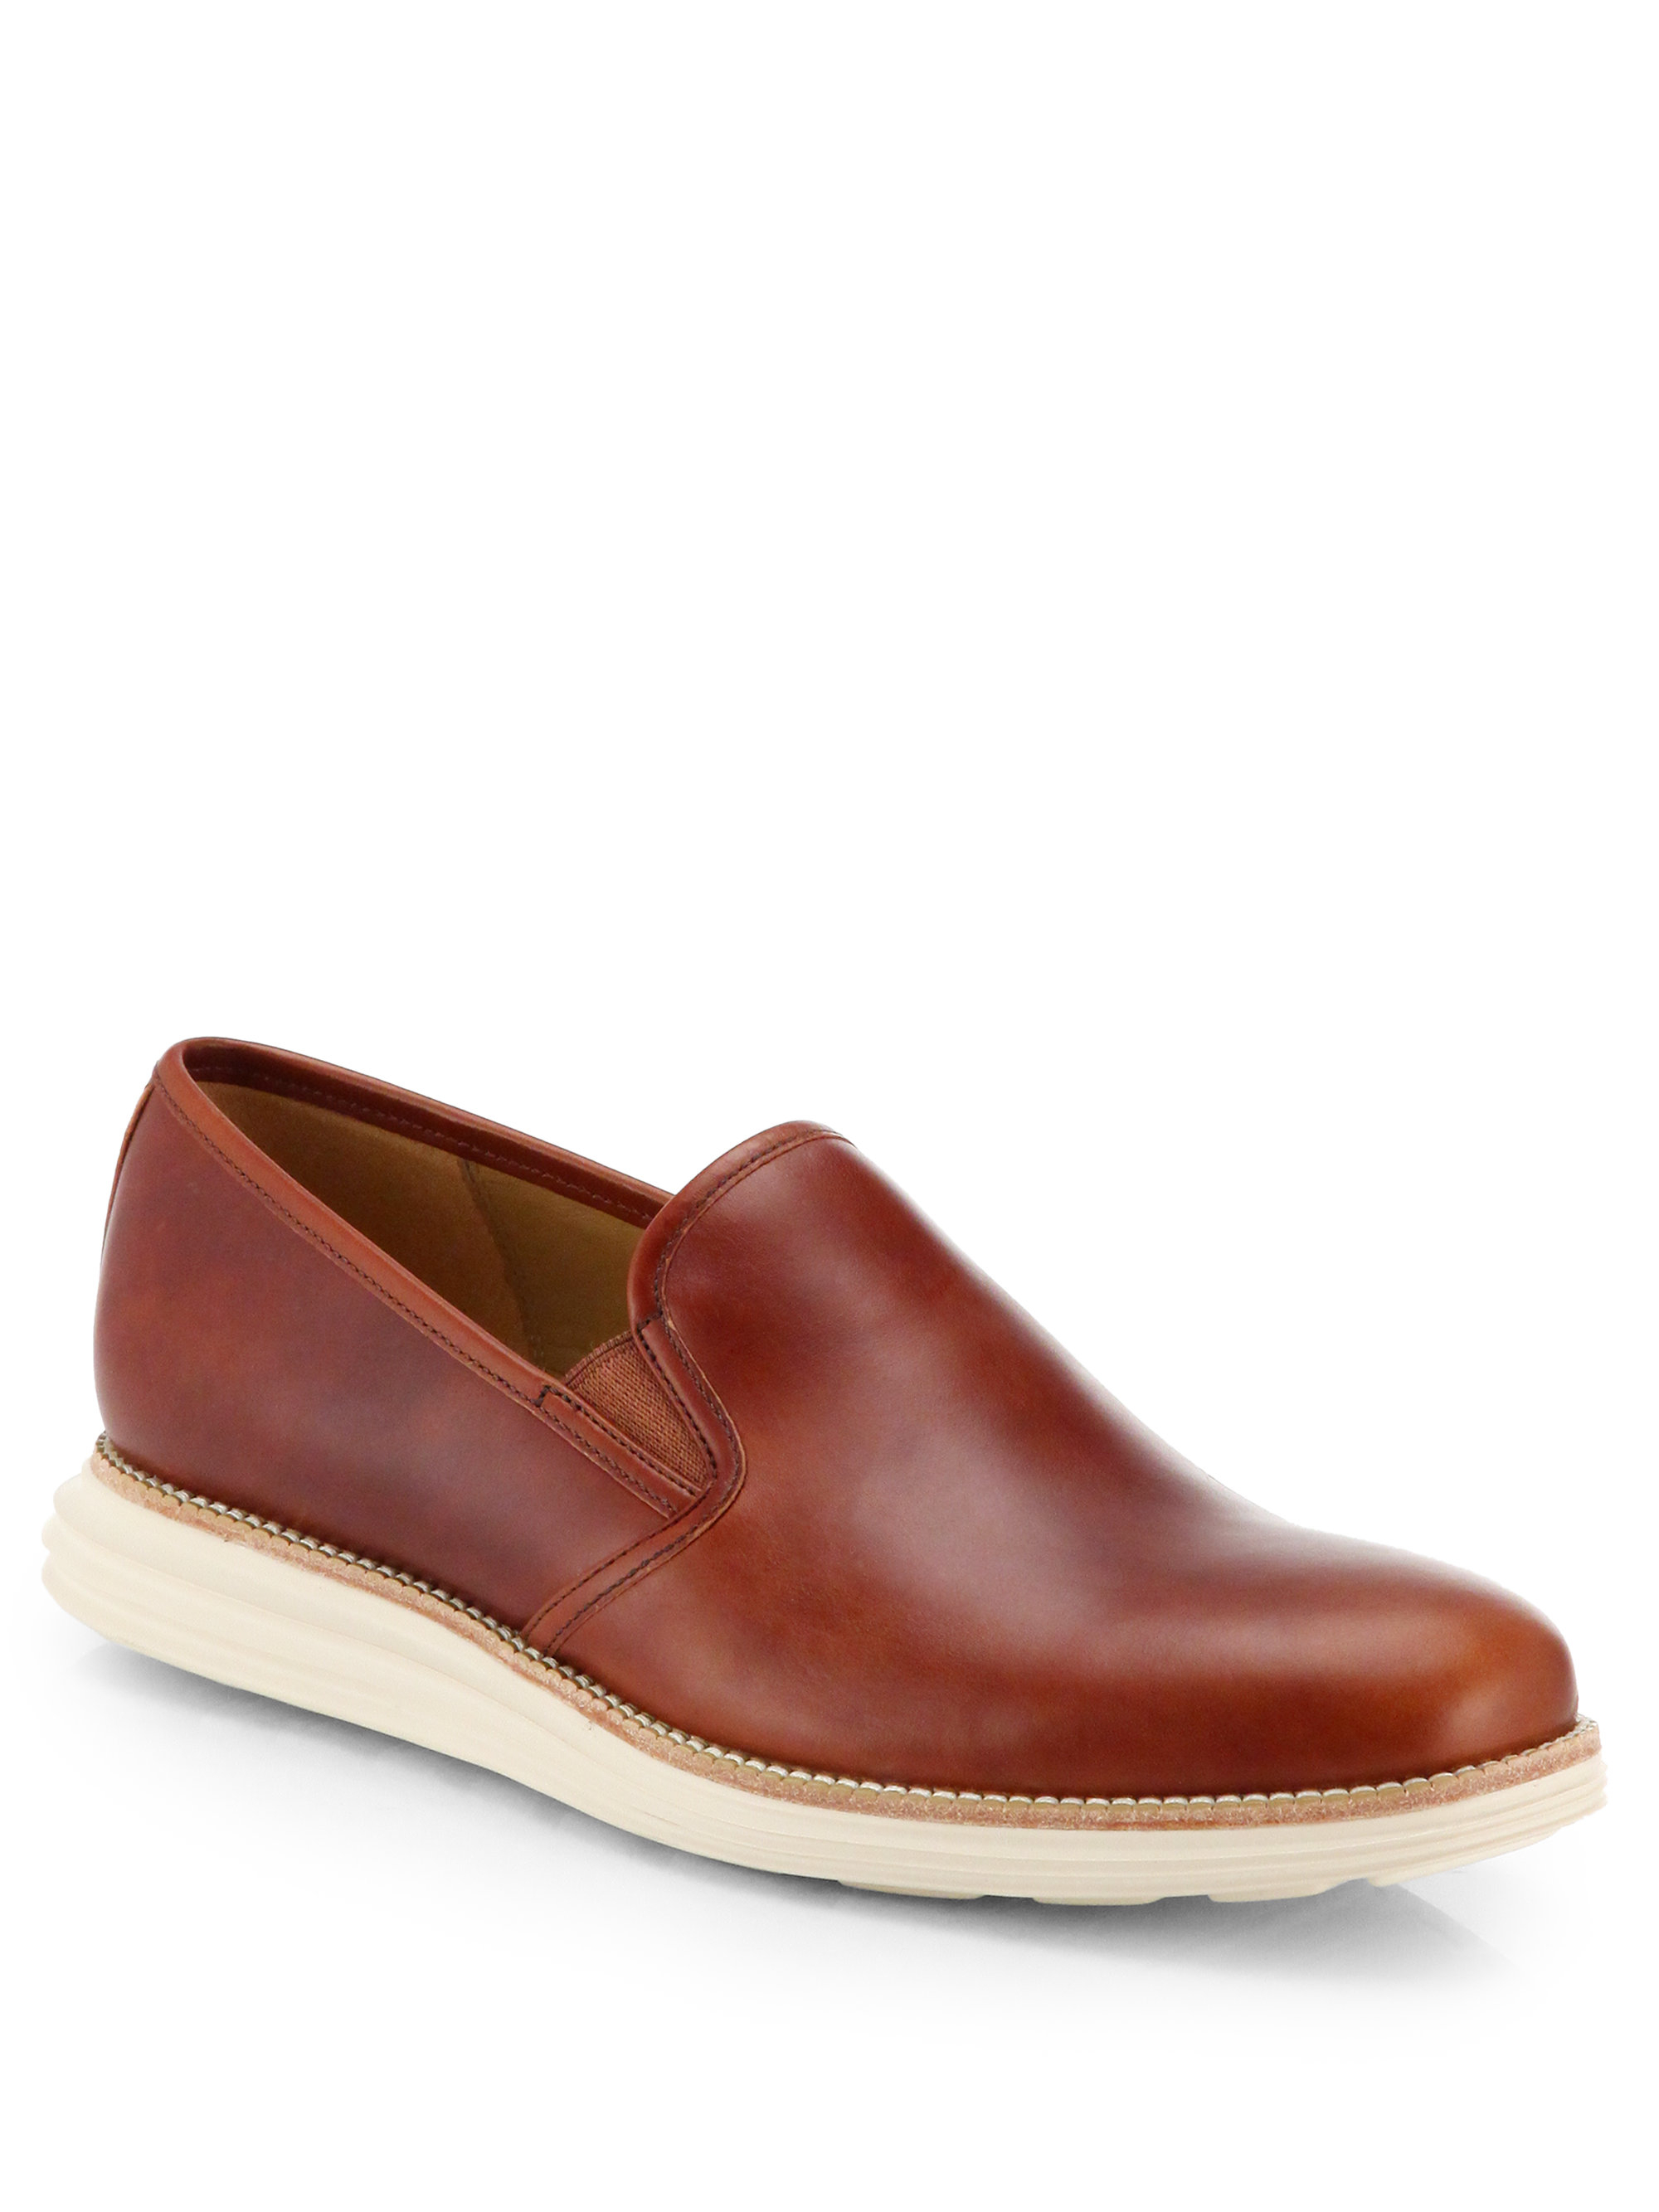 9d40b7a6ae9 Gallery. Previously sold at  Saks Fifth Avenue · Men s Cole Haan Lunargrand  ...